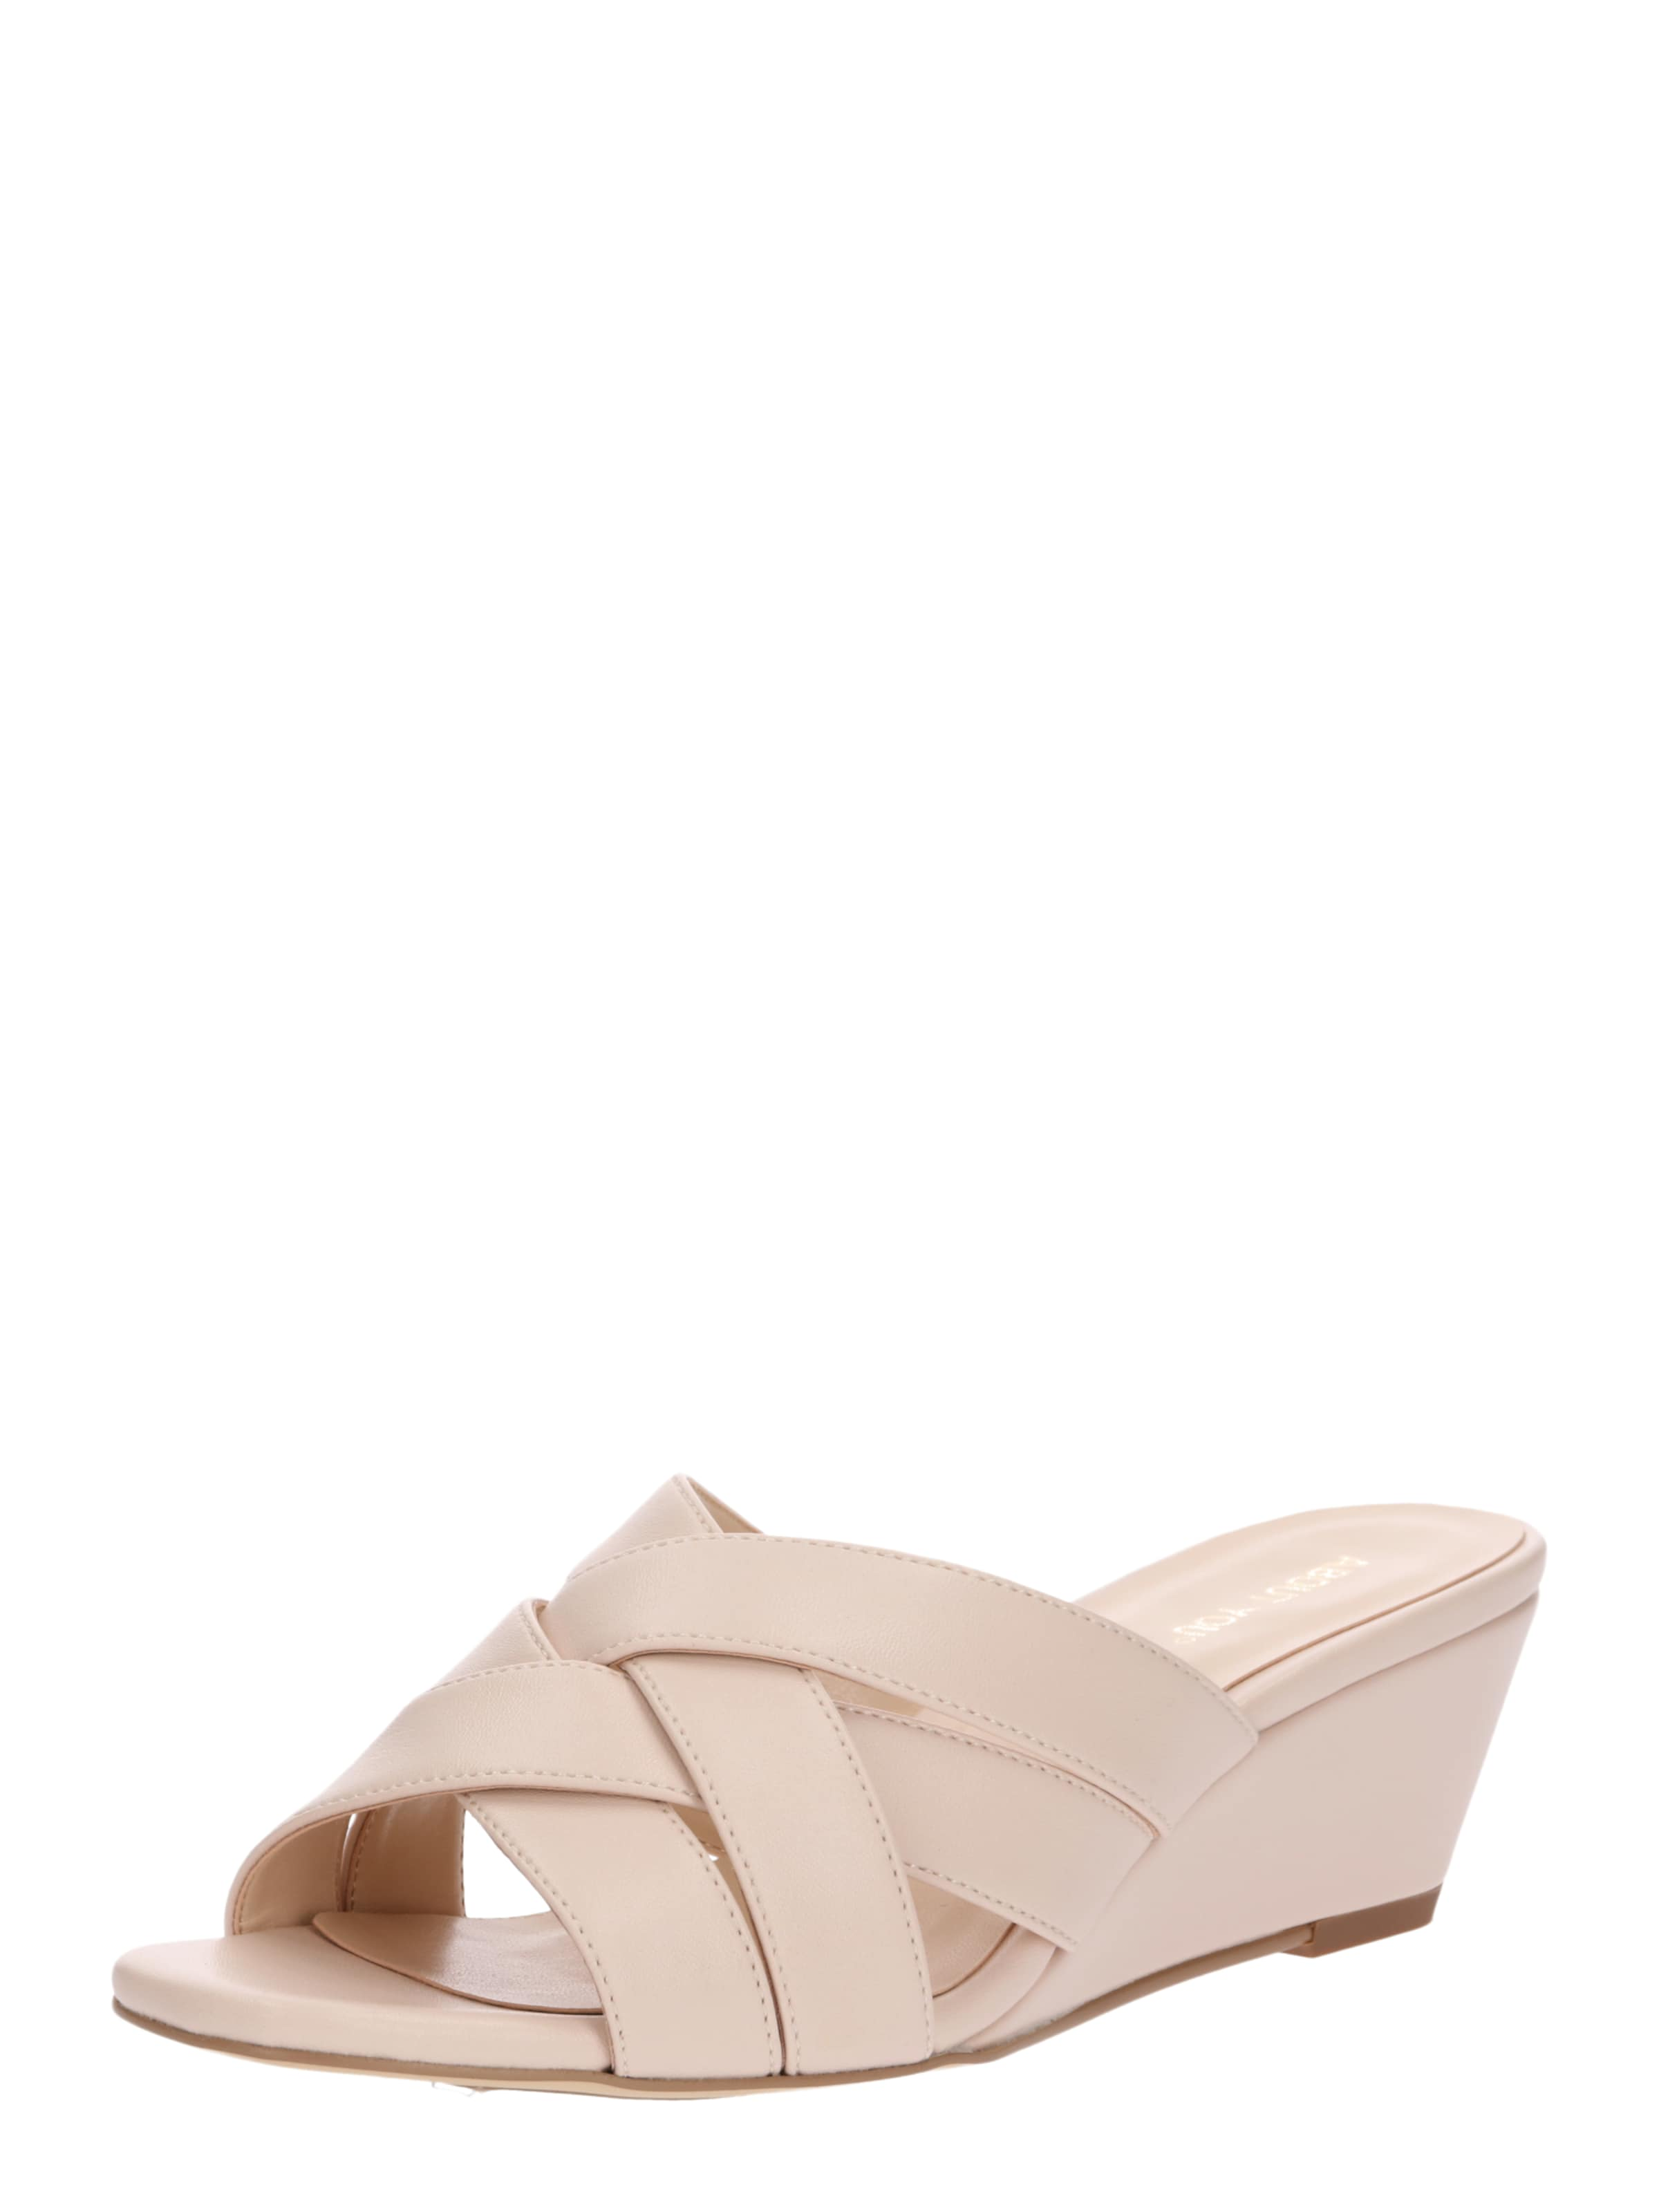 About Nude Mule 'nelly' You En Nwnm0v8O